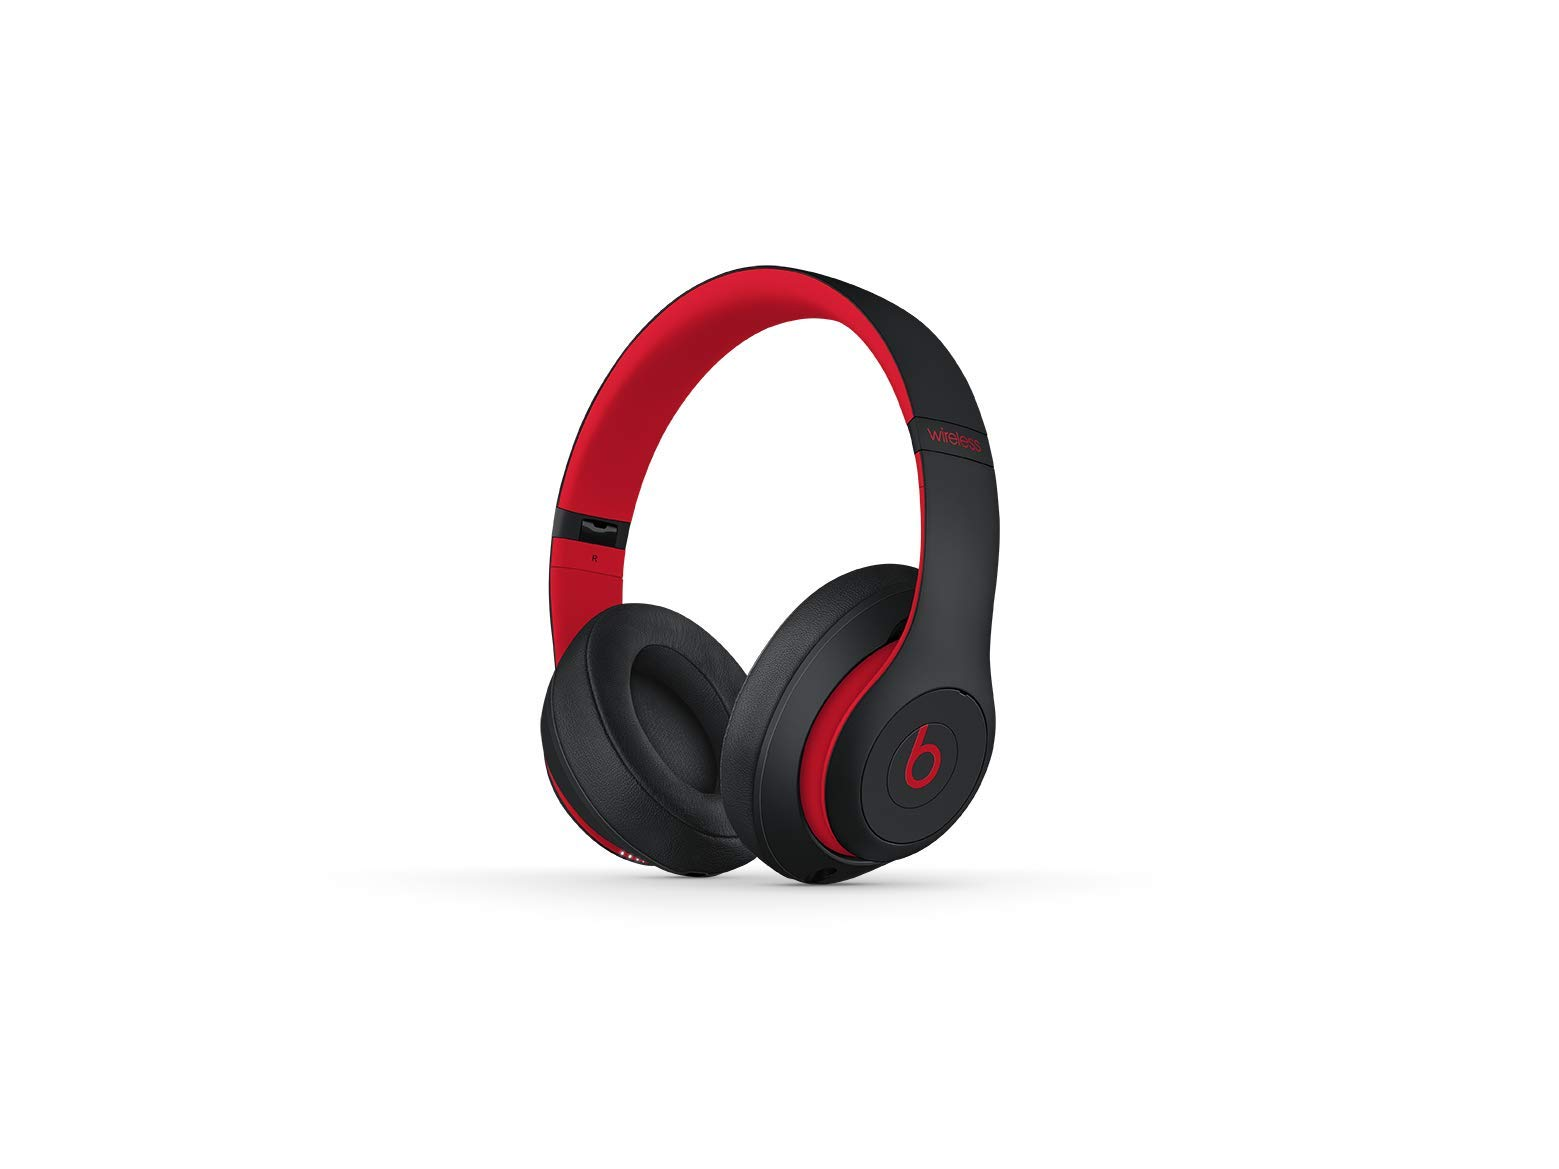 Beats Studio3 Wireless Over-Ear Kopfhörer – Die Beats Decade Collection – Klassisch Rot-Schwarz